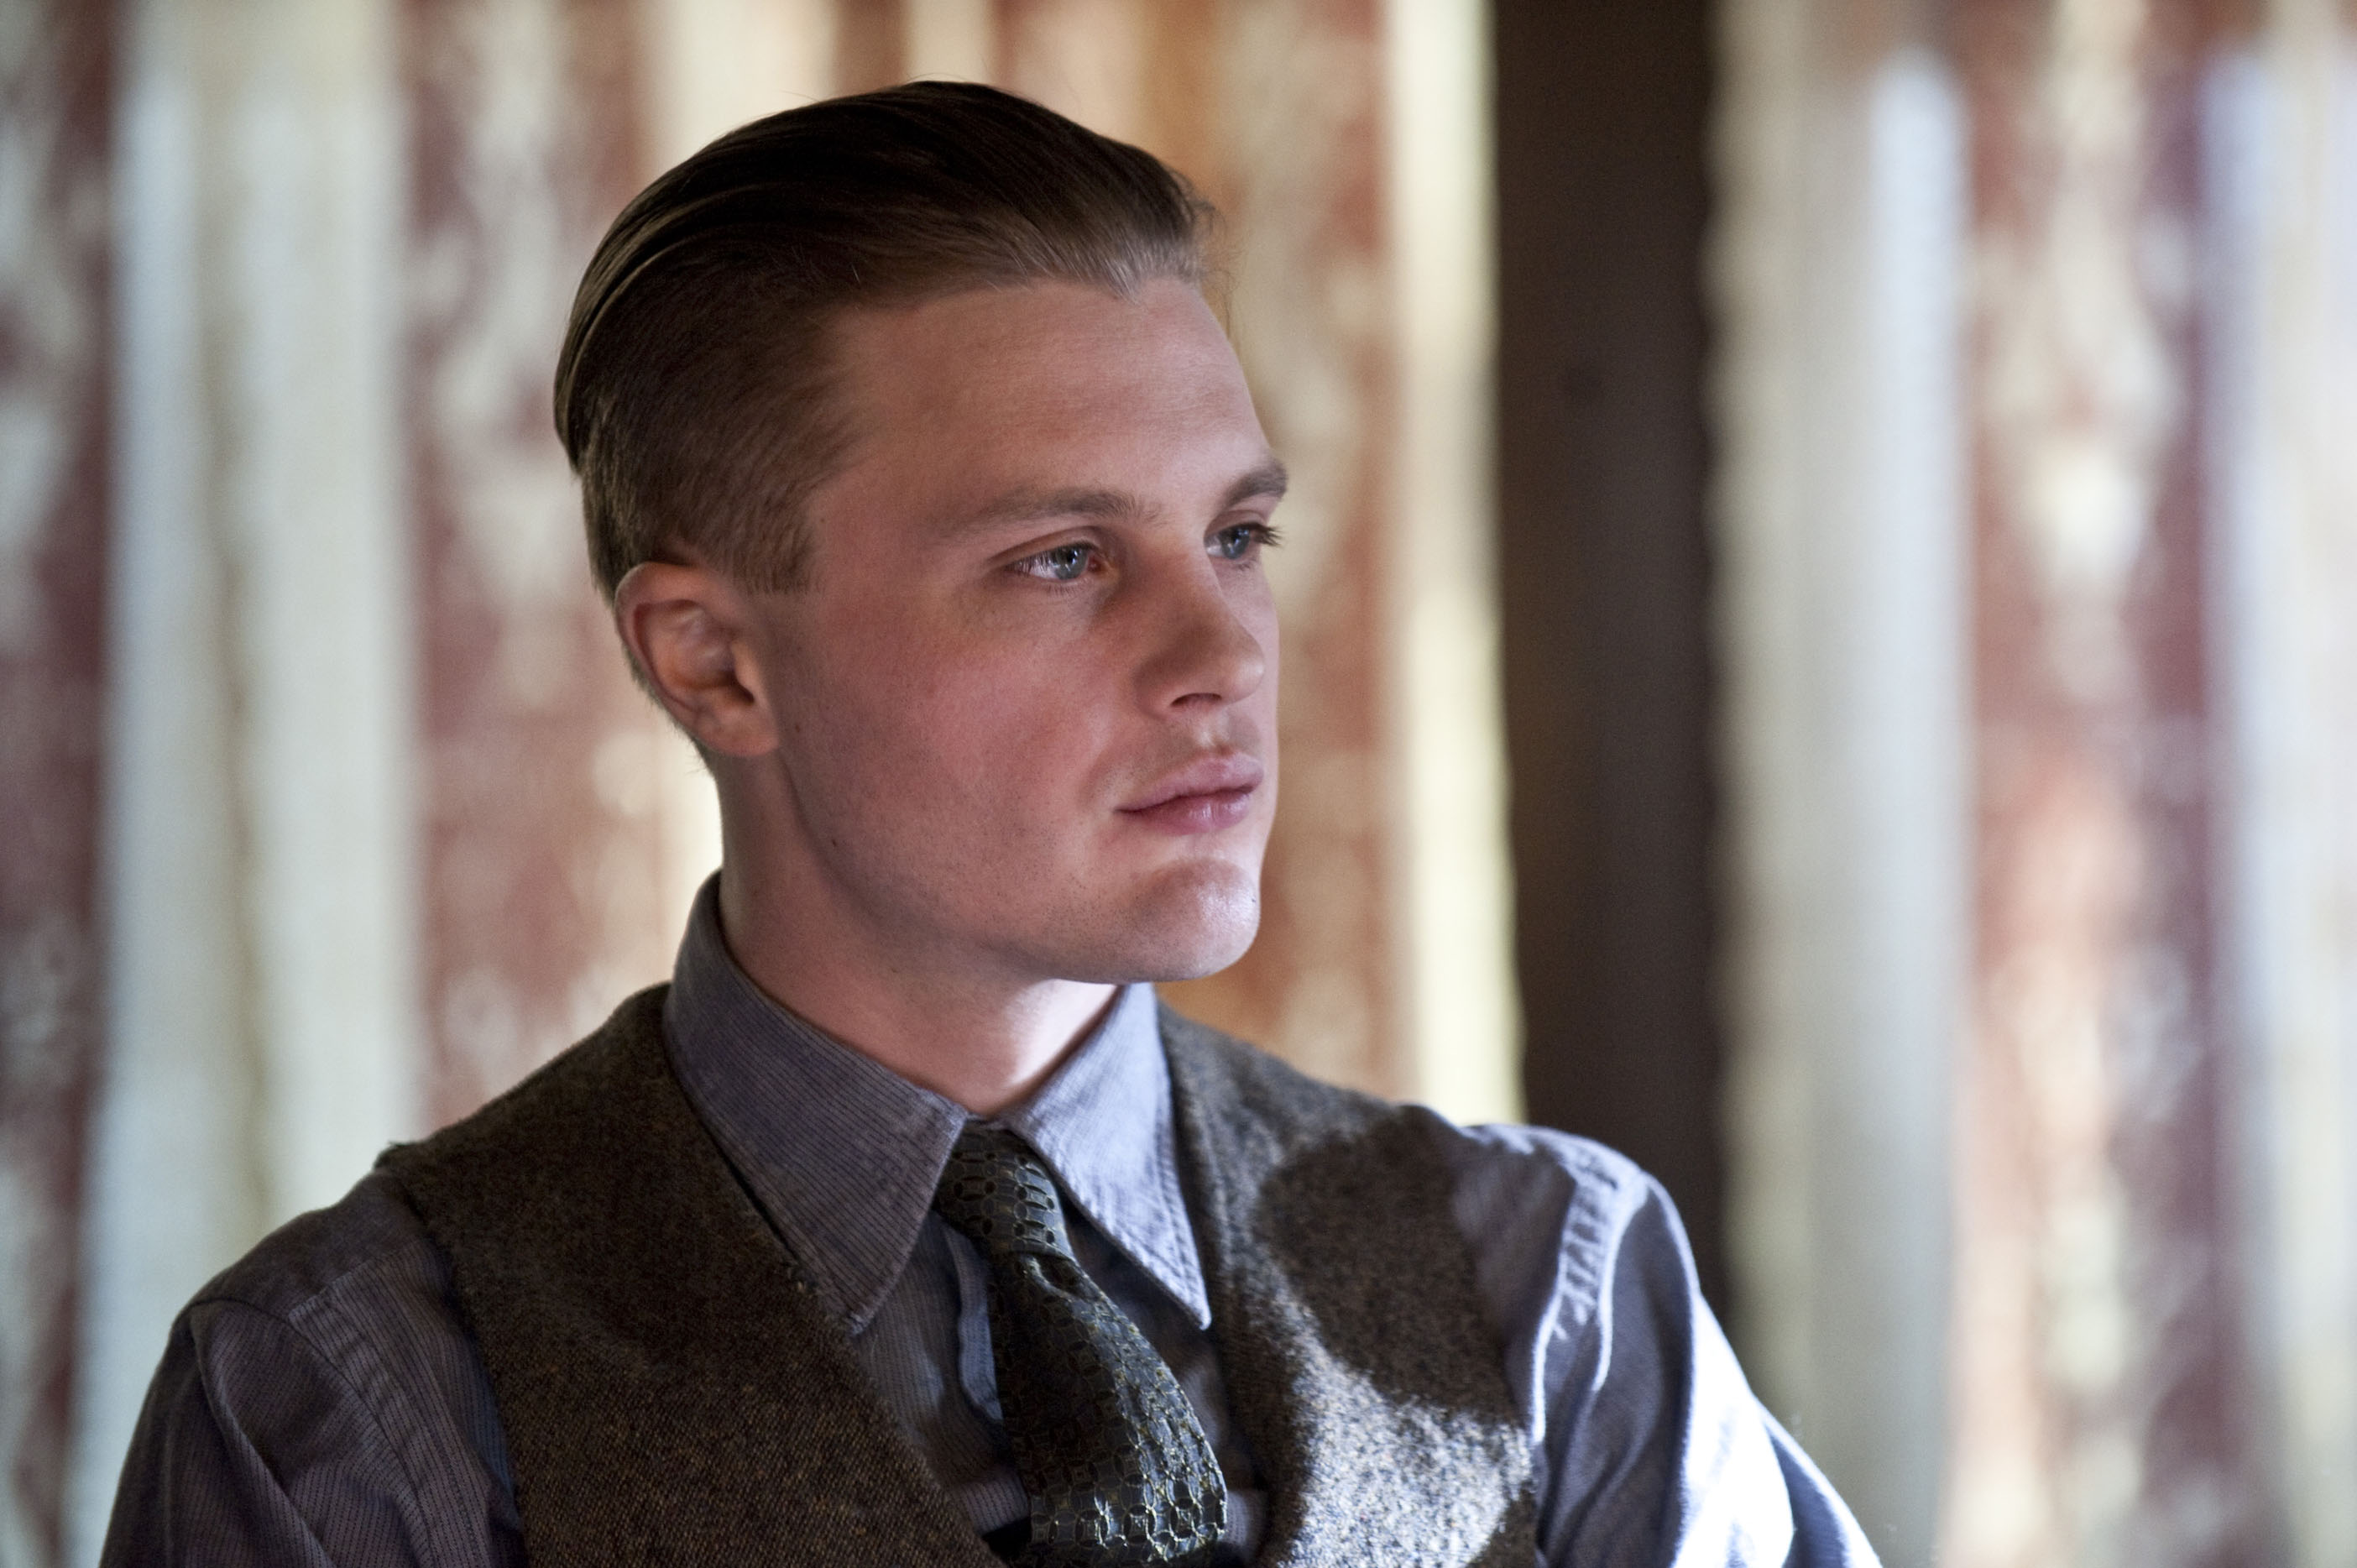 michael pitt haircutmichael pitt death to birth перевод, michael pitt instagram, michael pitt death to birth, michael pitt 2019, michael pitt gif, michael pitt boardwalk empire, michael pitt height, michael pitt hannibal, michael pitt haircut, michael pitt i origins, michael pitt twitter, michael pitt vk, michael pitt band, michael pitt lips, michael pitt natal chart, michael pitt interview, michael pitt wikipedia, michael pitt films, michael pitt the dreamers, michael pitt ghost in the shell scene